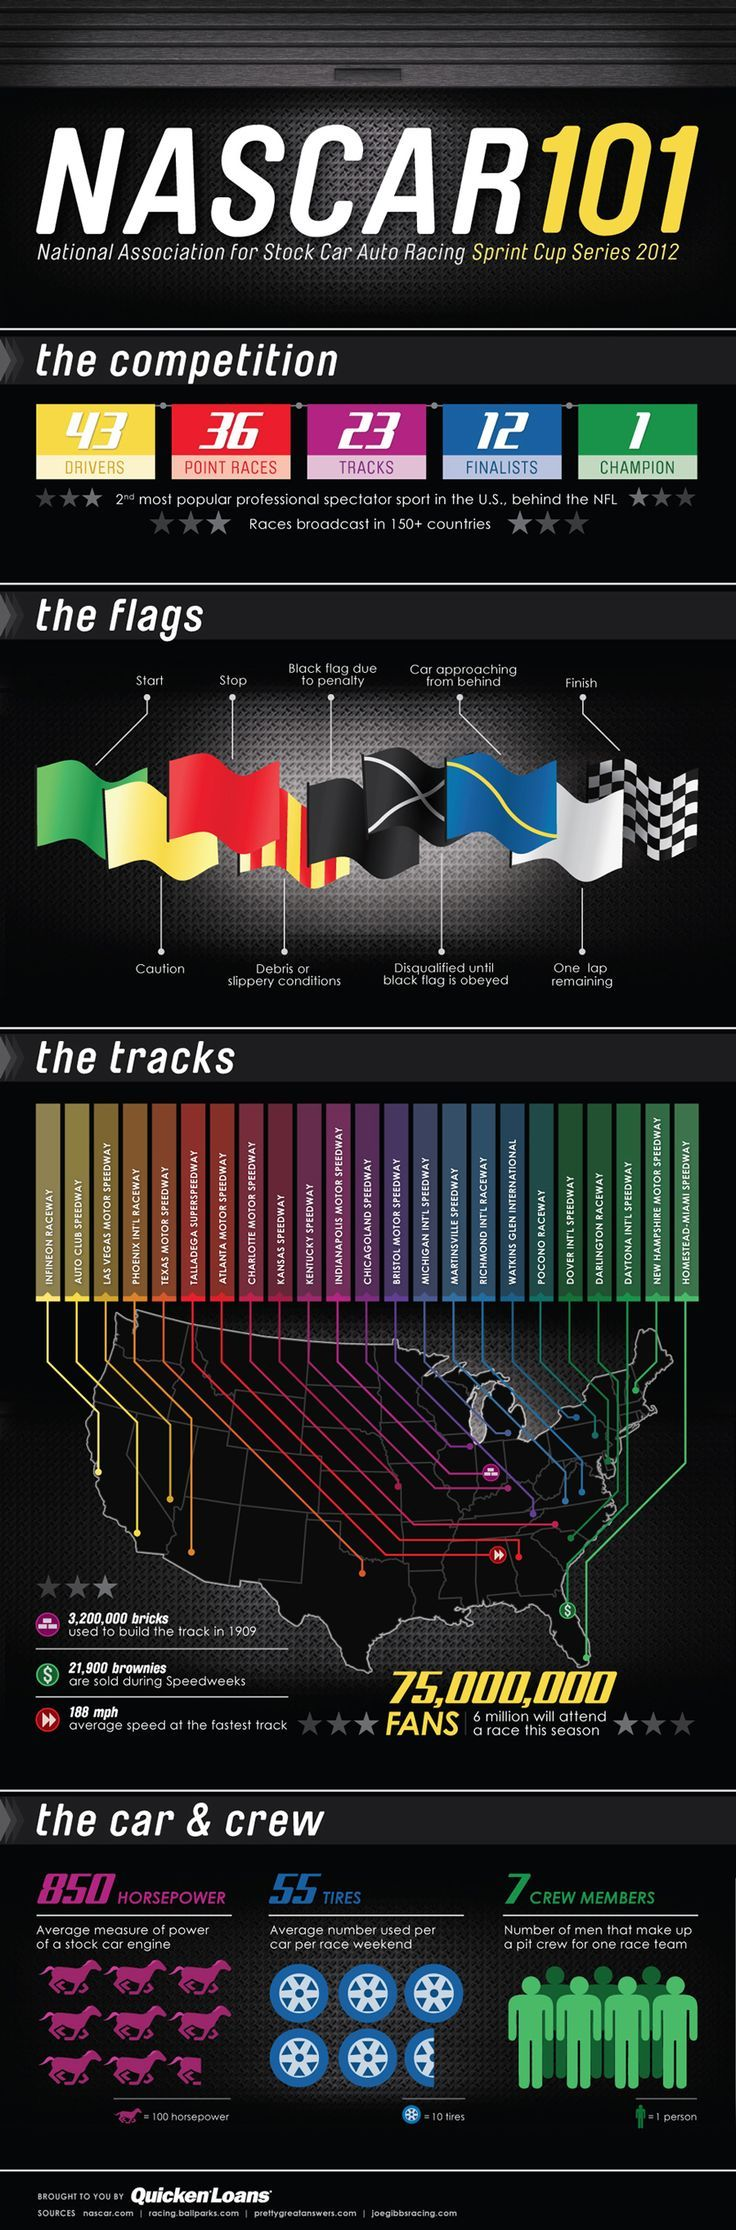 Nascar 101 by quicken loans via tipsographic more at http